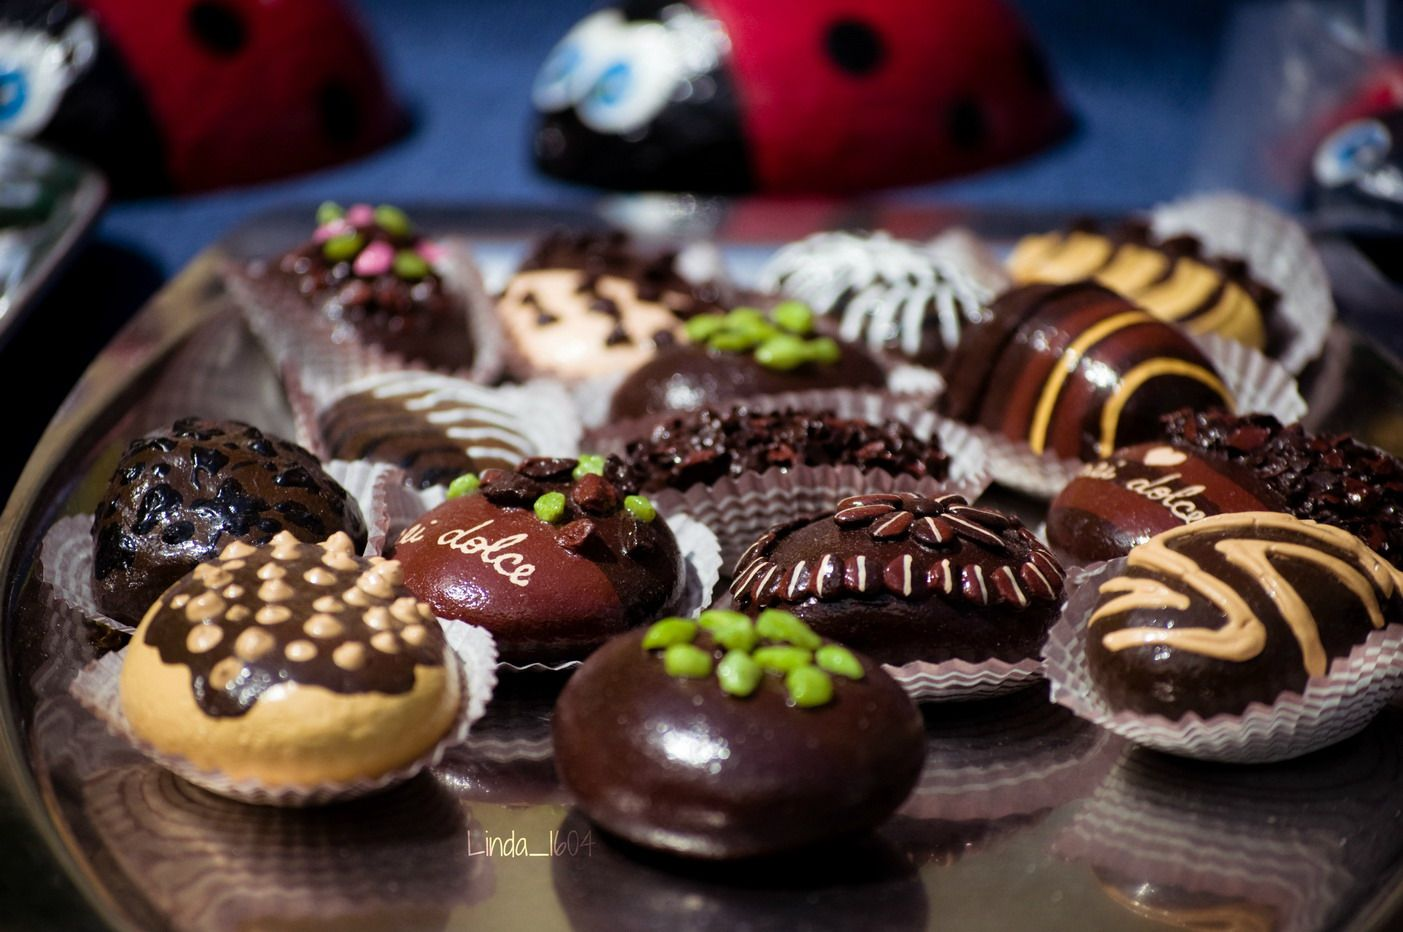 #food #stones #sweet #candies #photography  Photo by Linda_1604 Creations by Liliana Laffineur